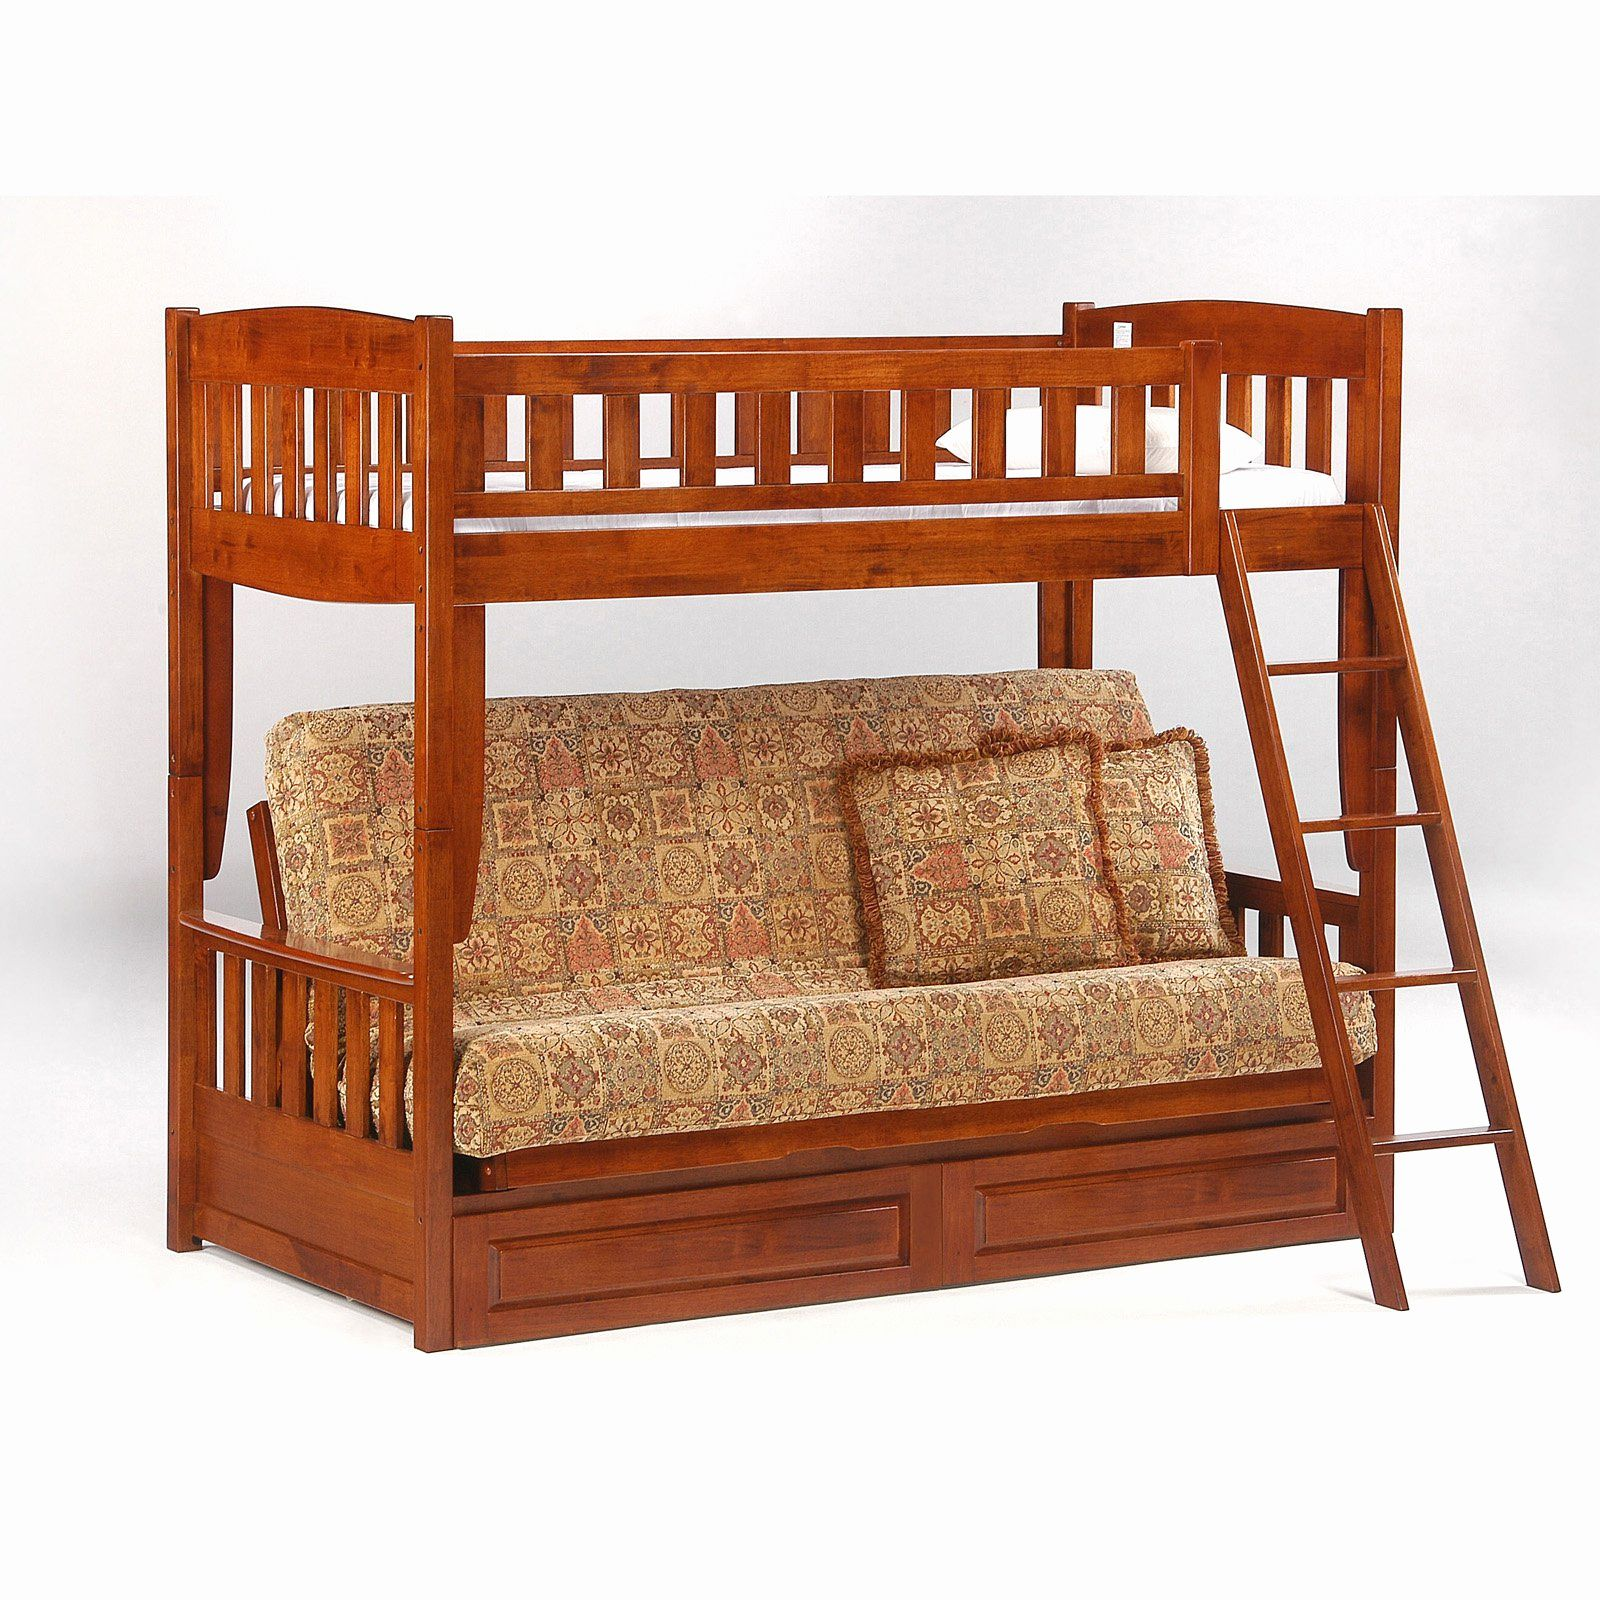 208 Bunk Bed with Desk Underneath Frame Check more at http